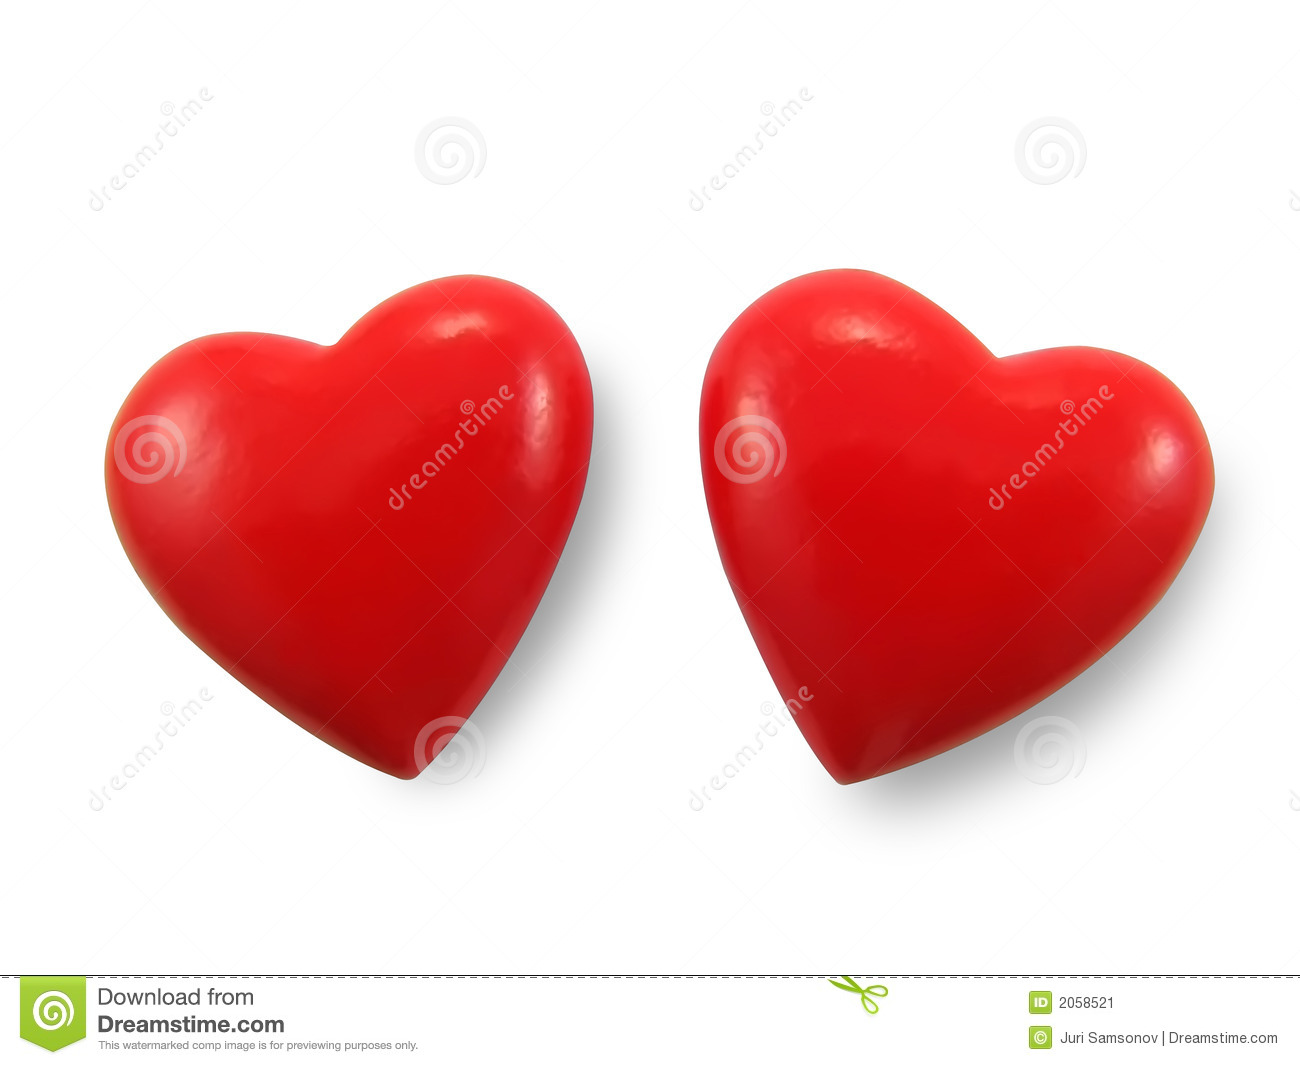 Two red hearts.